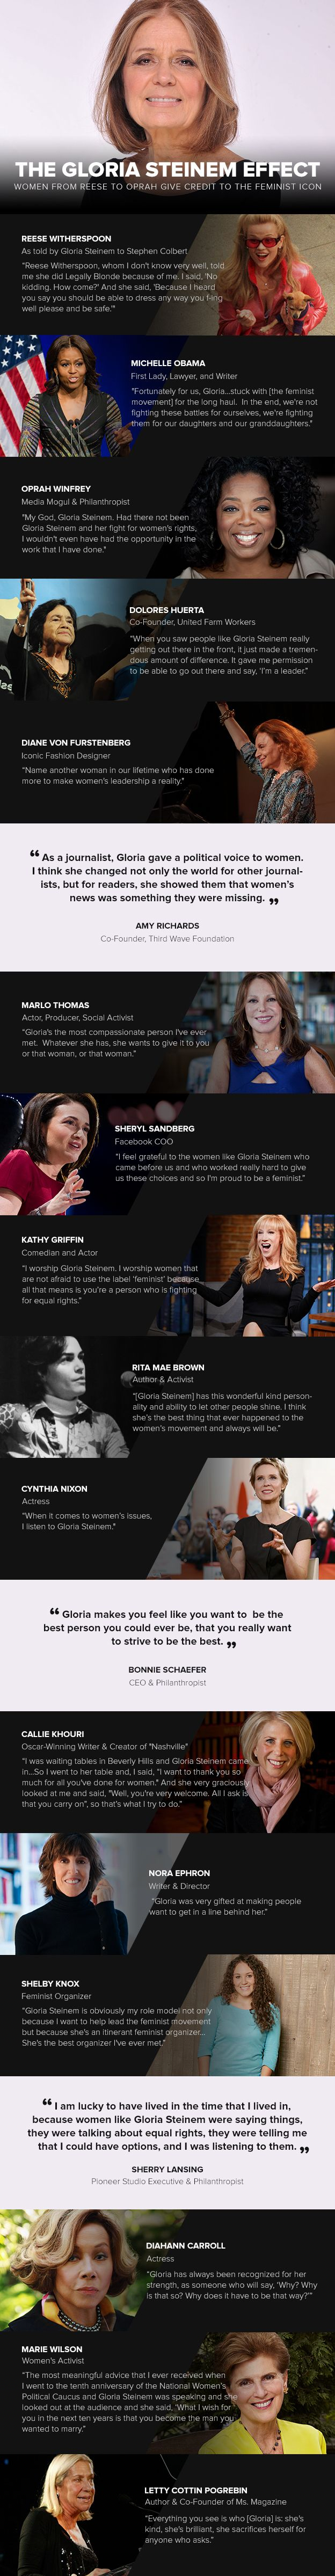 In honor of Gloria Steinem's birthday! Celebrating feminism and the history of women. #HBDGloria [Infographic]